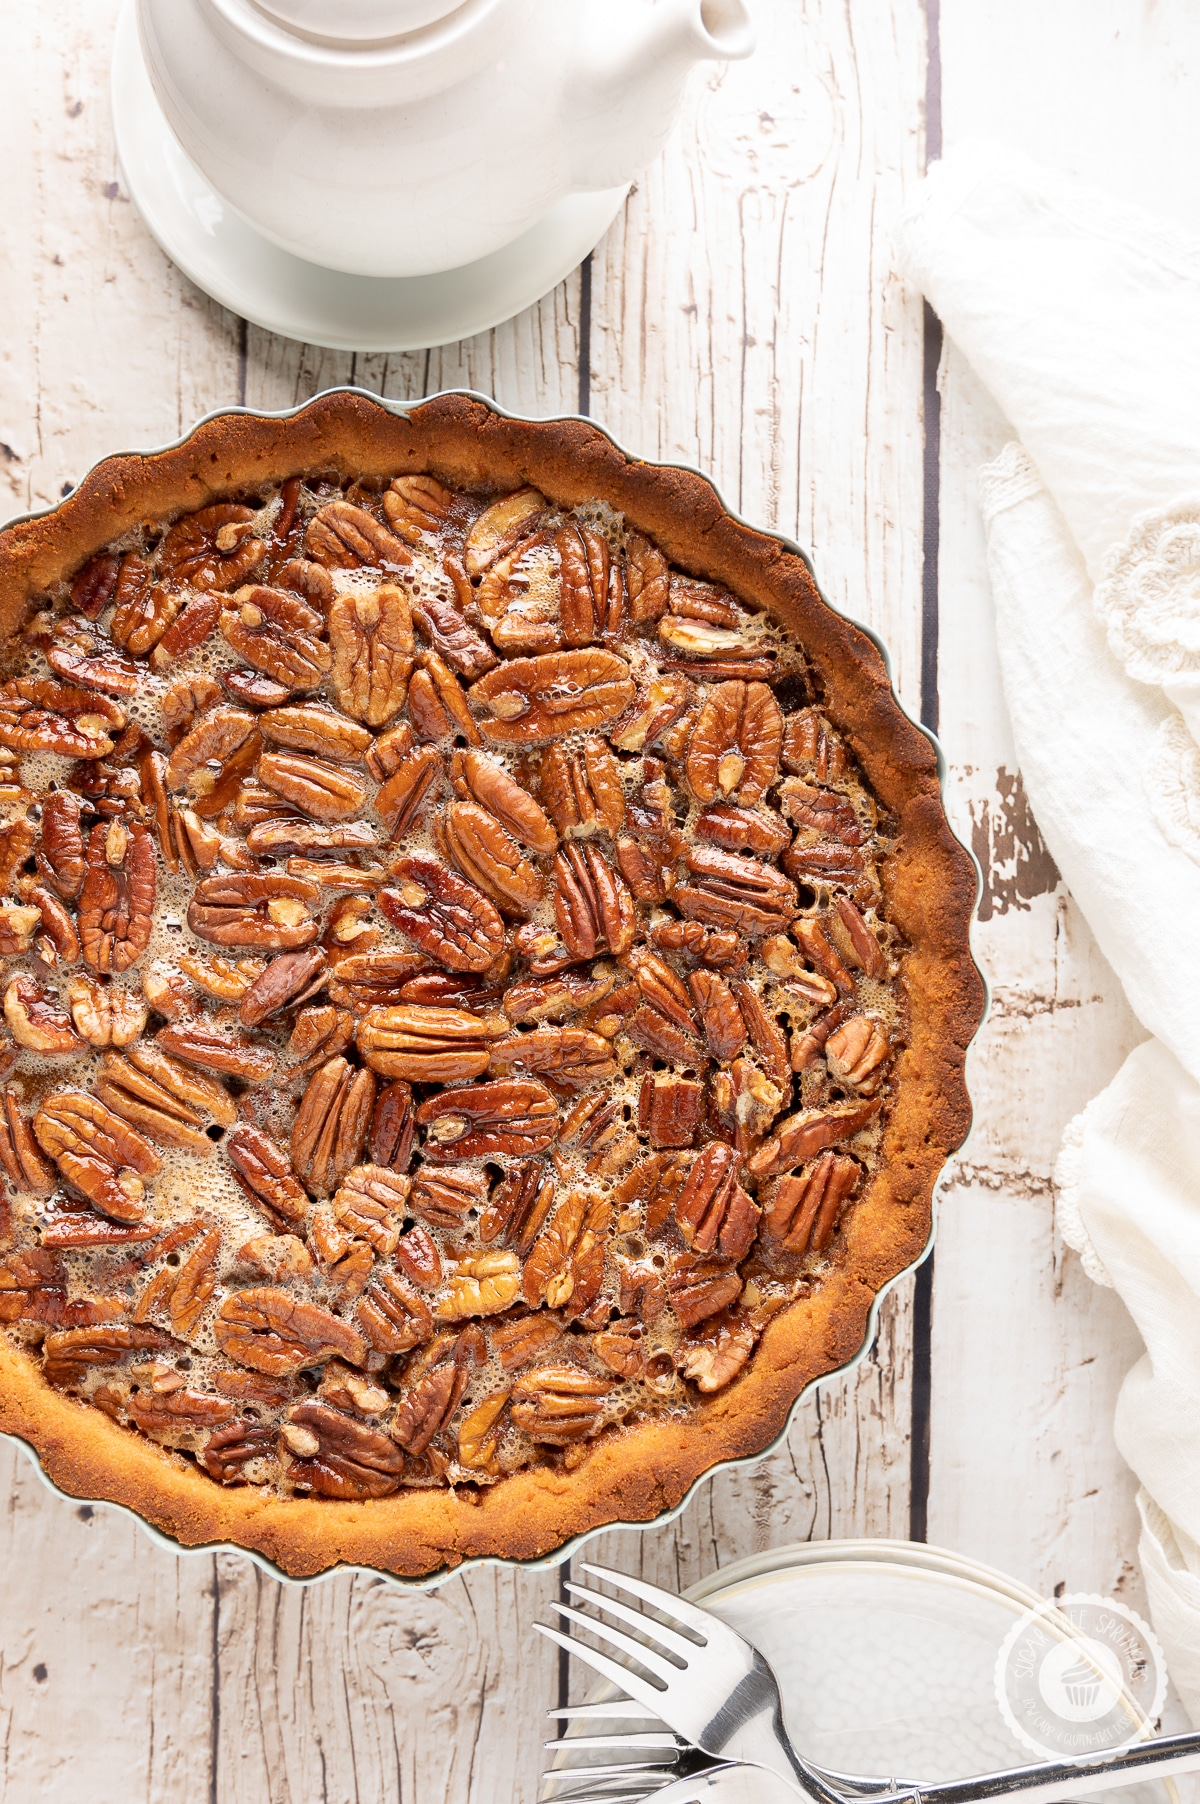 Pecan pie on a rustic wooden backdrop with white napkin, plates and a pot of hot tea